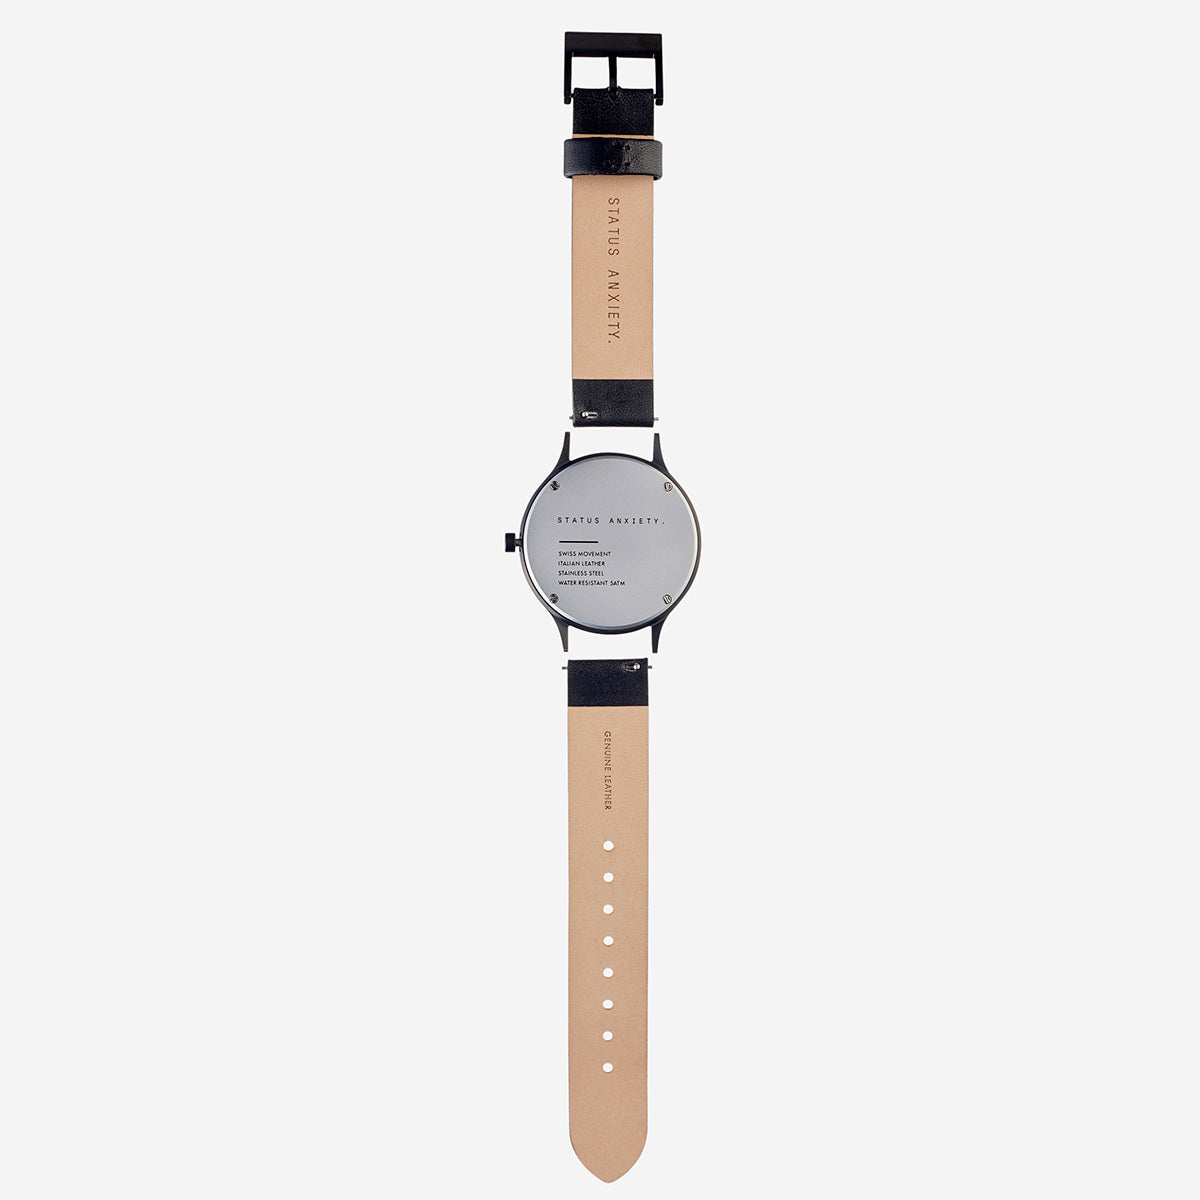 Status Anxiety Inertia Leather Unisex Watch Strap (Only)- Black Strap/Black Buckle